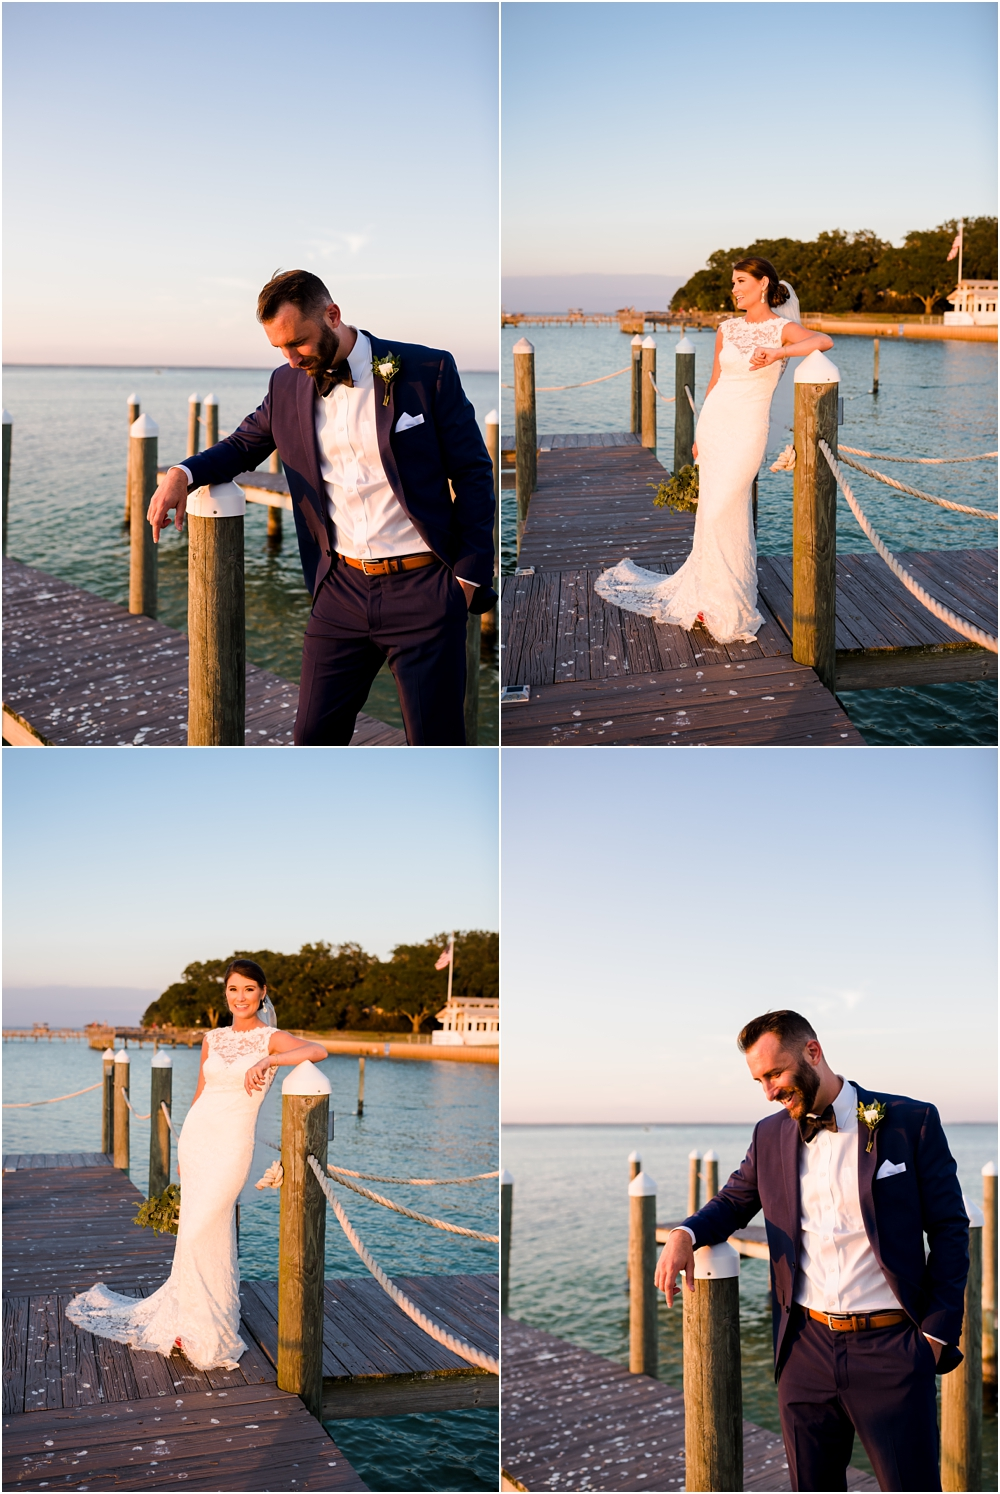 varner-florida-wedding-photographer-30a-panama-city-beach-destin-tallahassee-kiersten-grant-photography-116.jpg